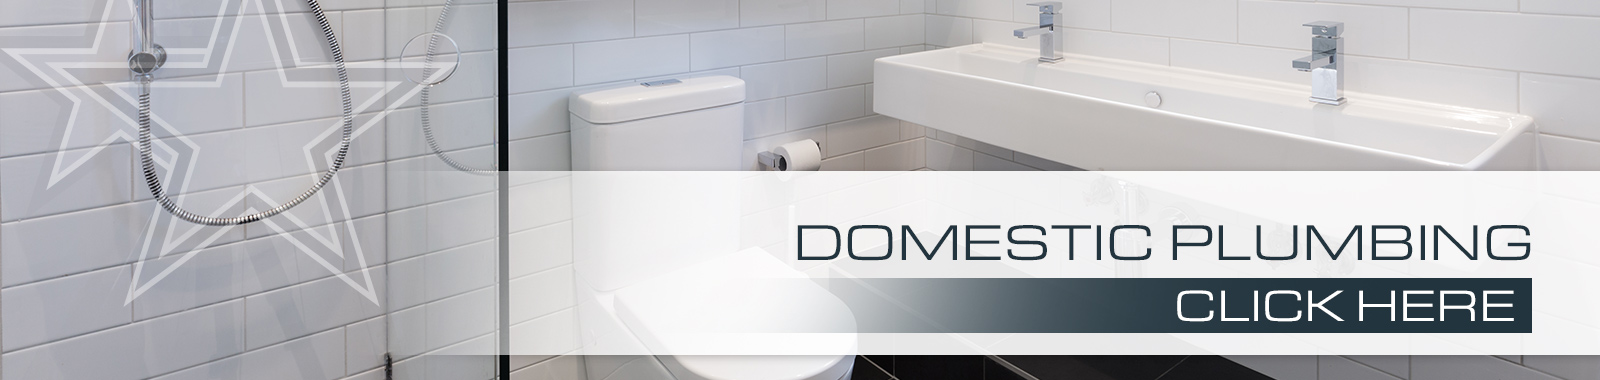 banner_domestic